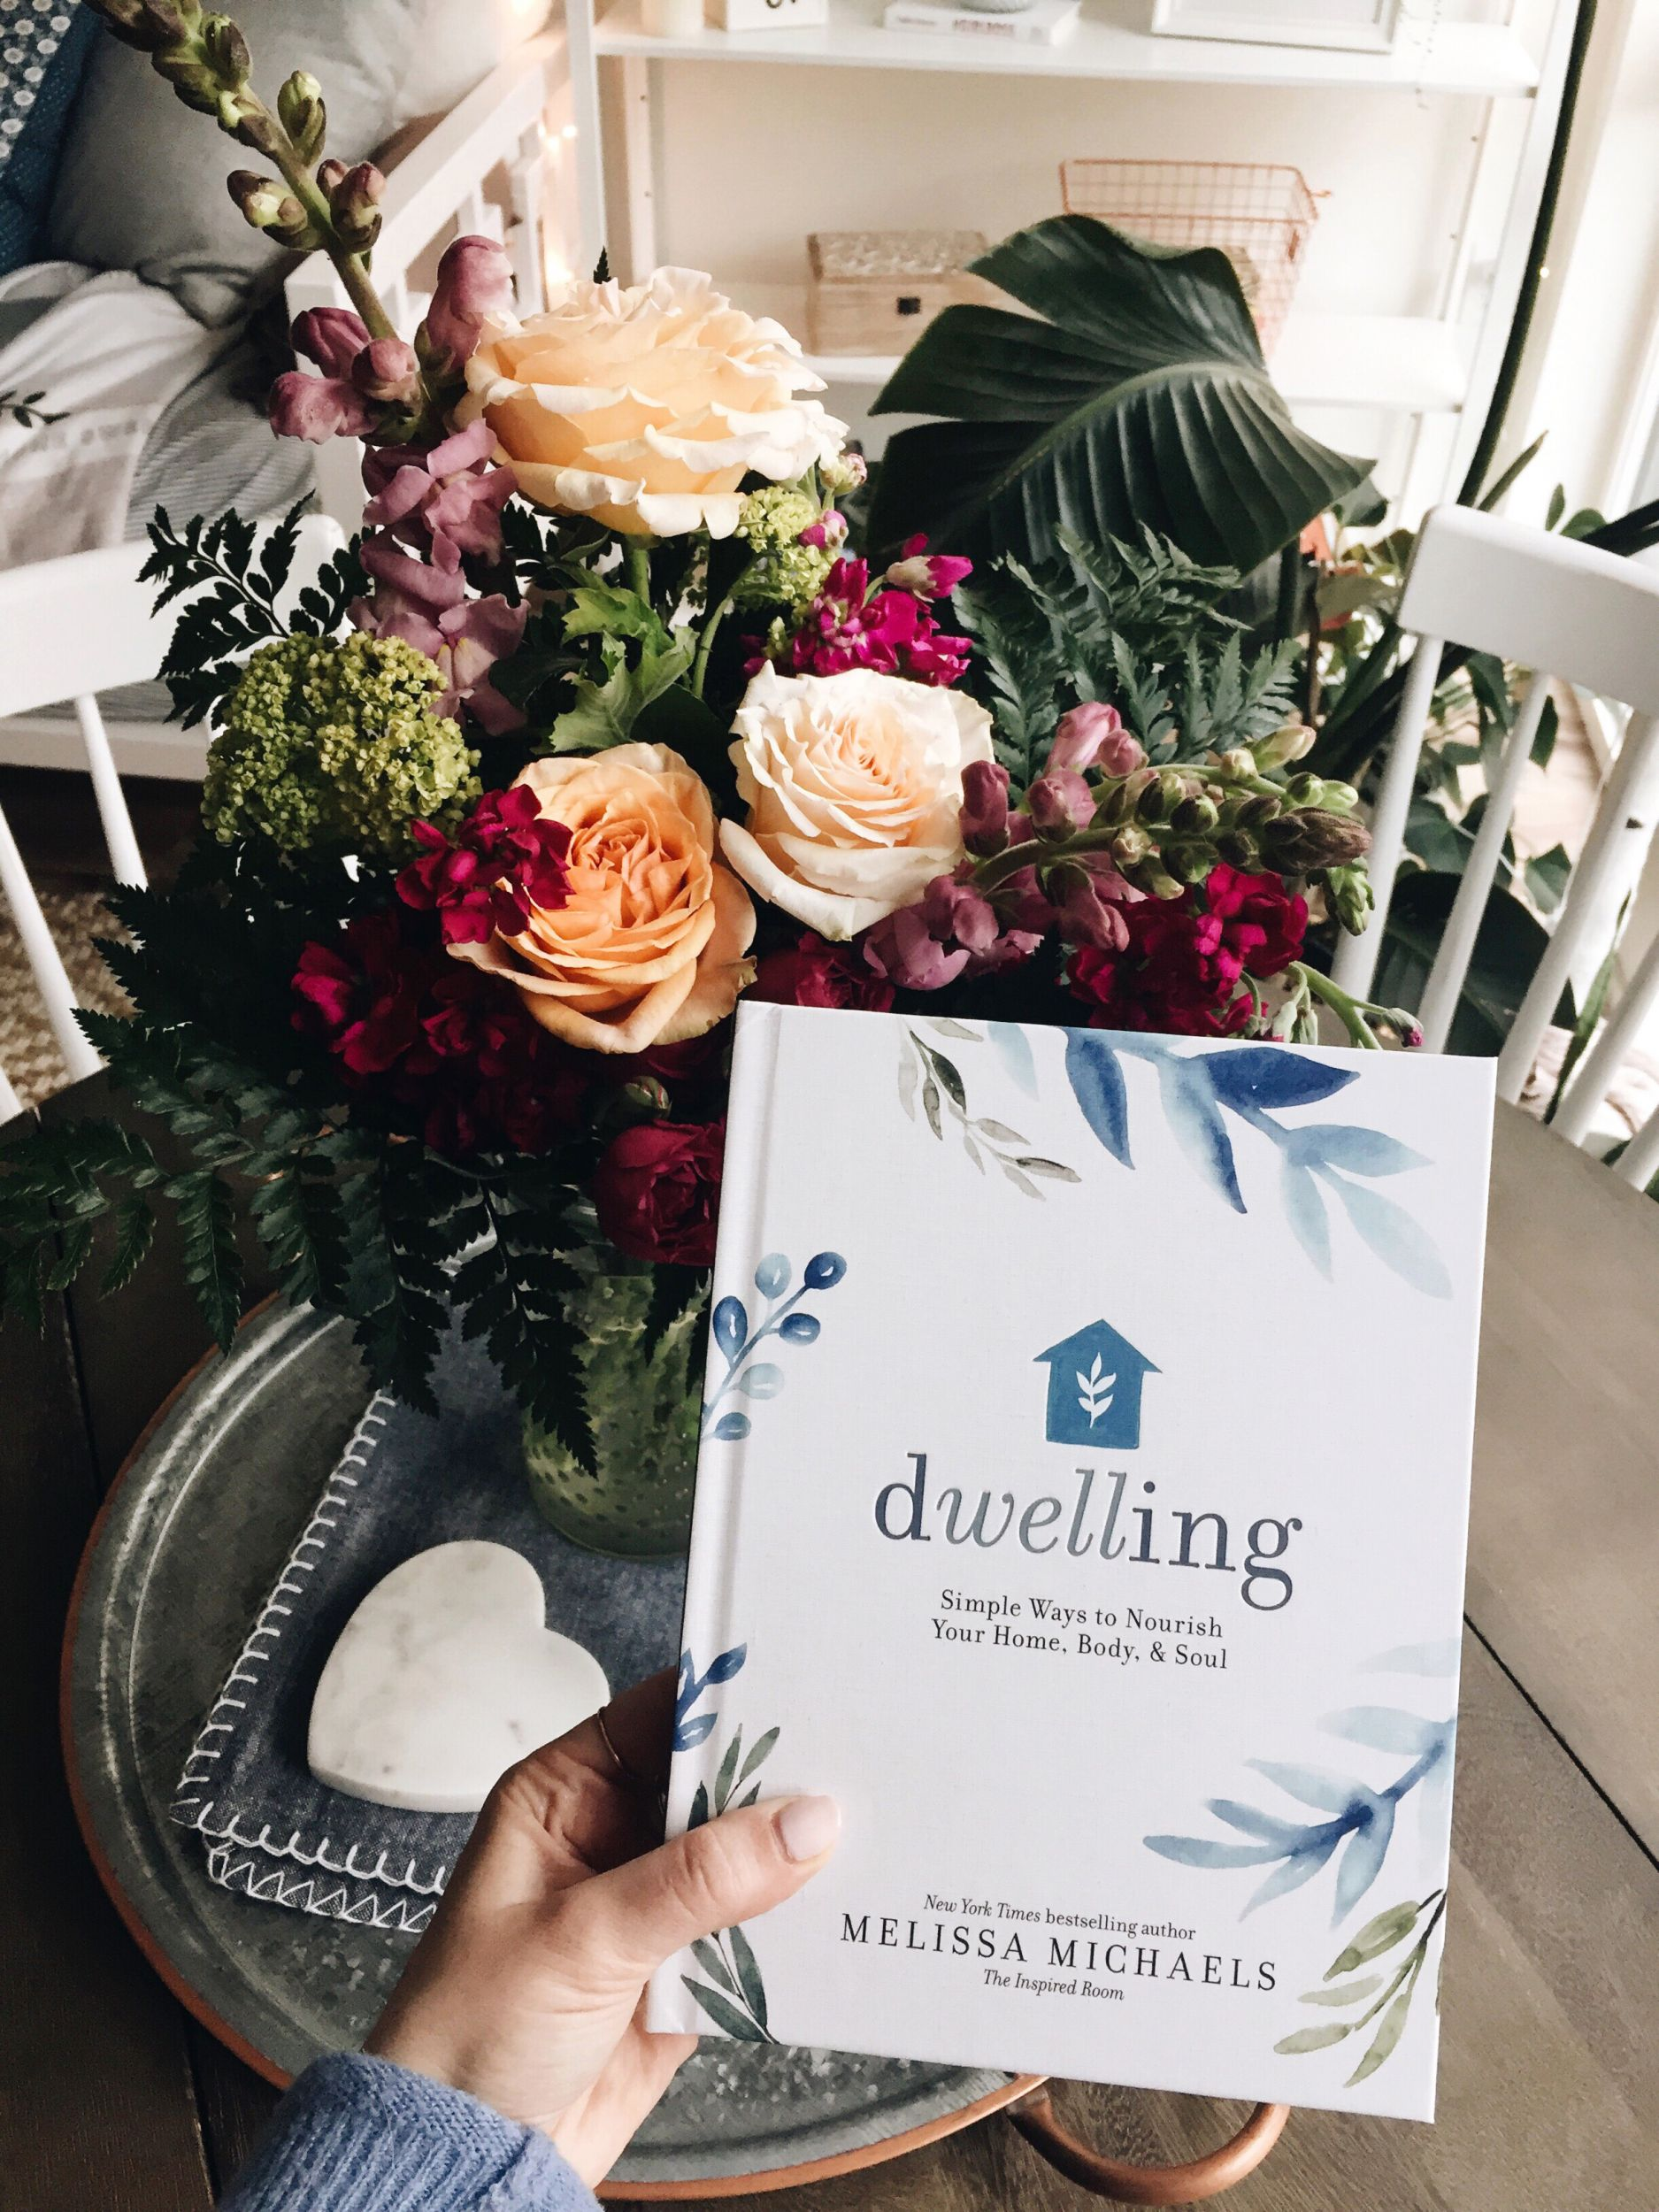 Dwelling: The Heart of the Home-Maker